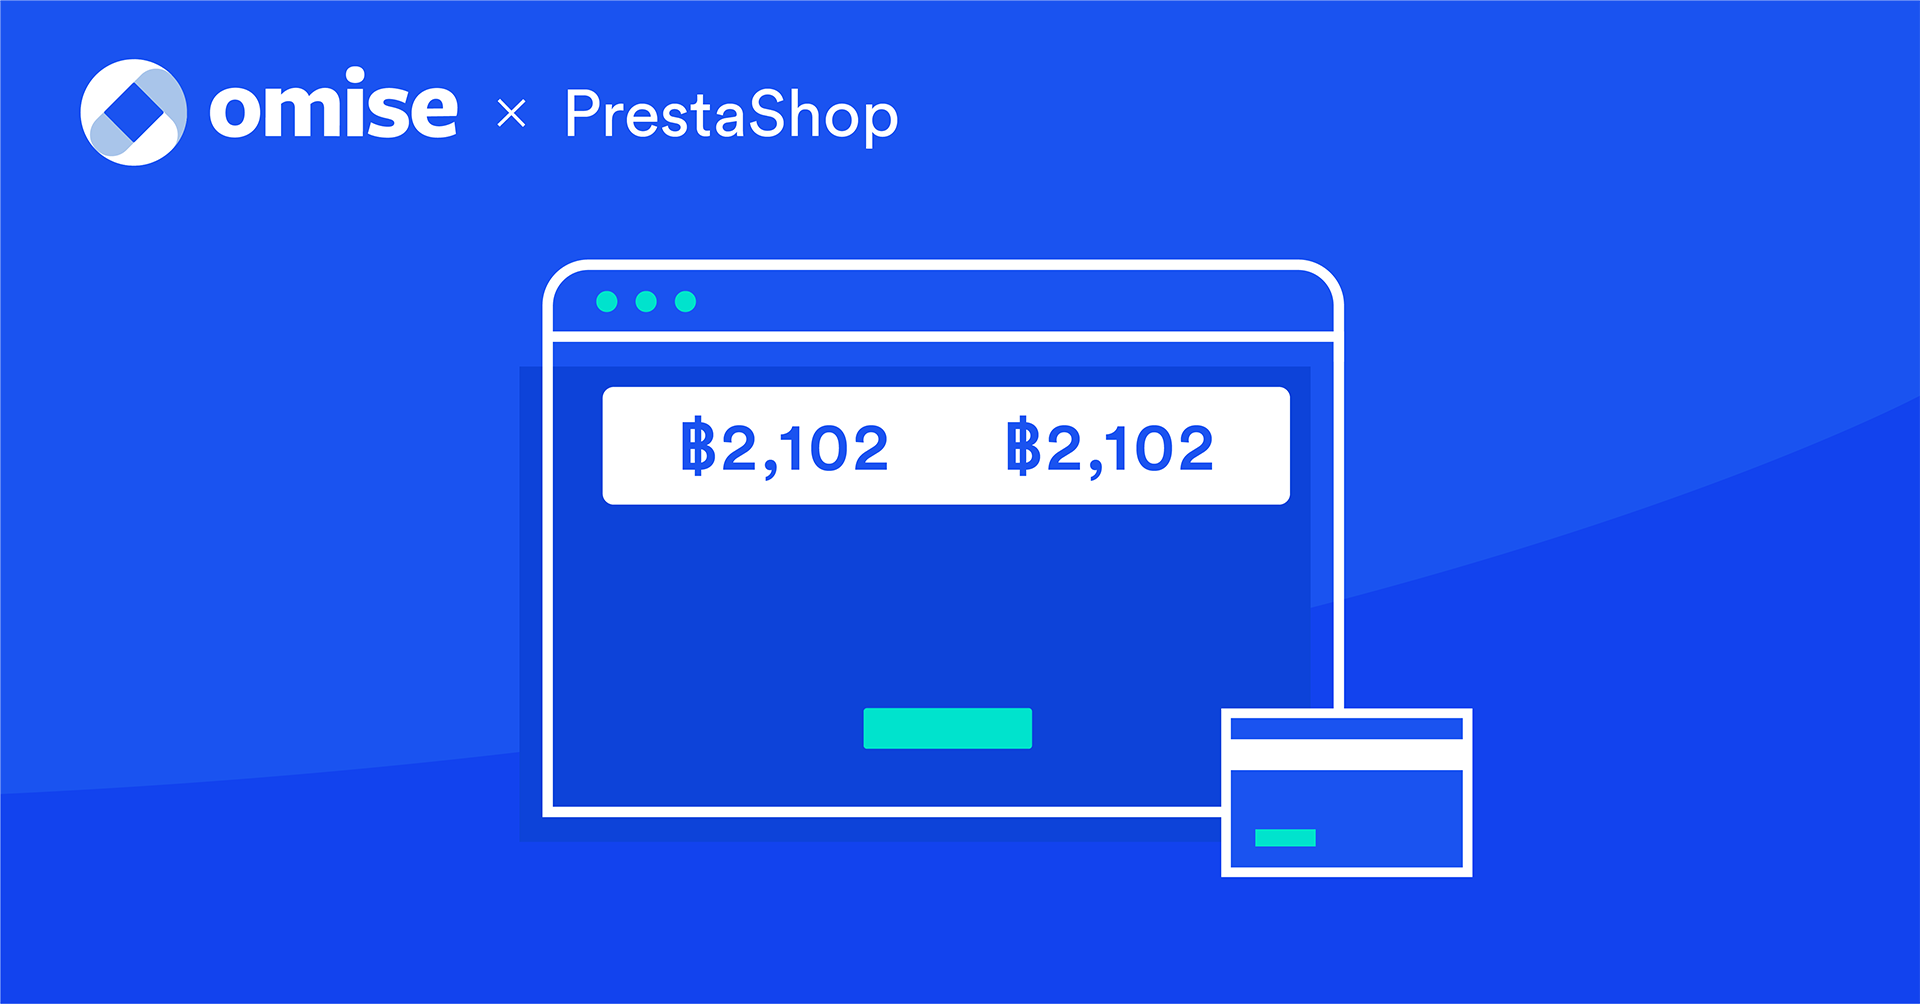 OmiseXPrestaShop